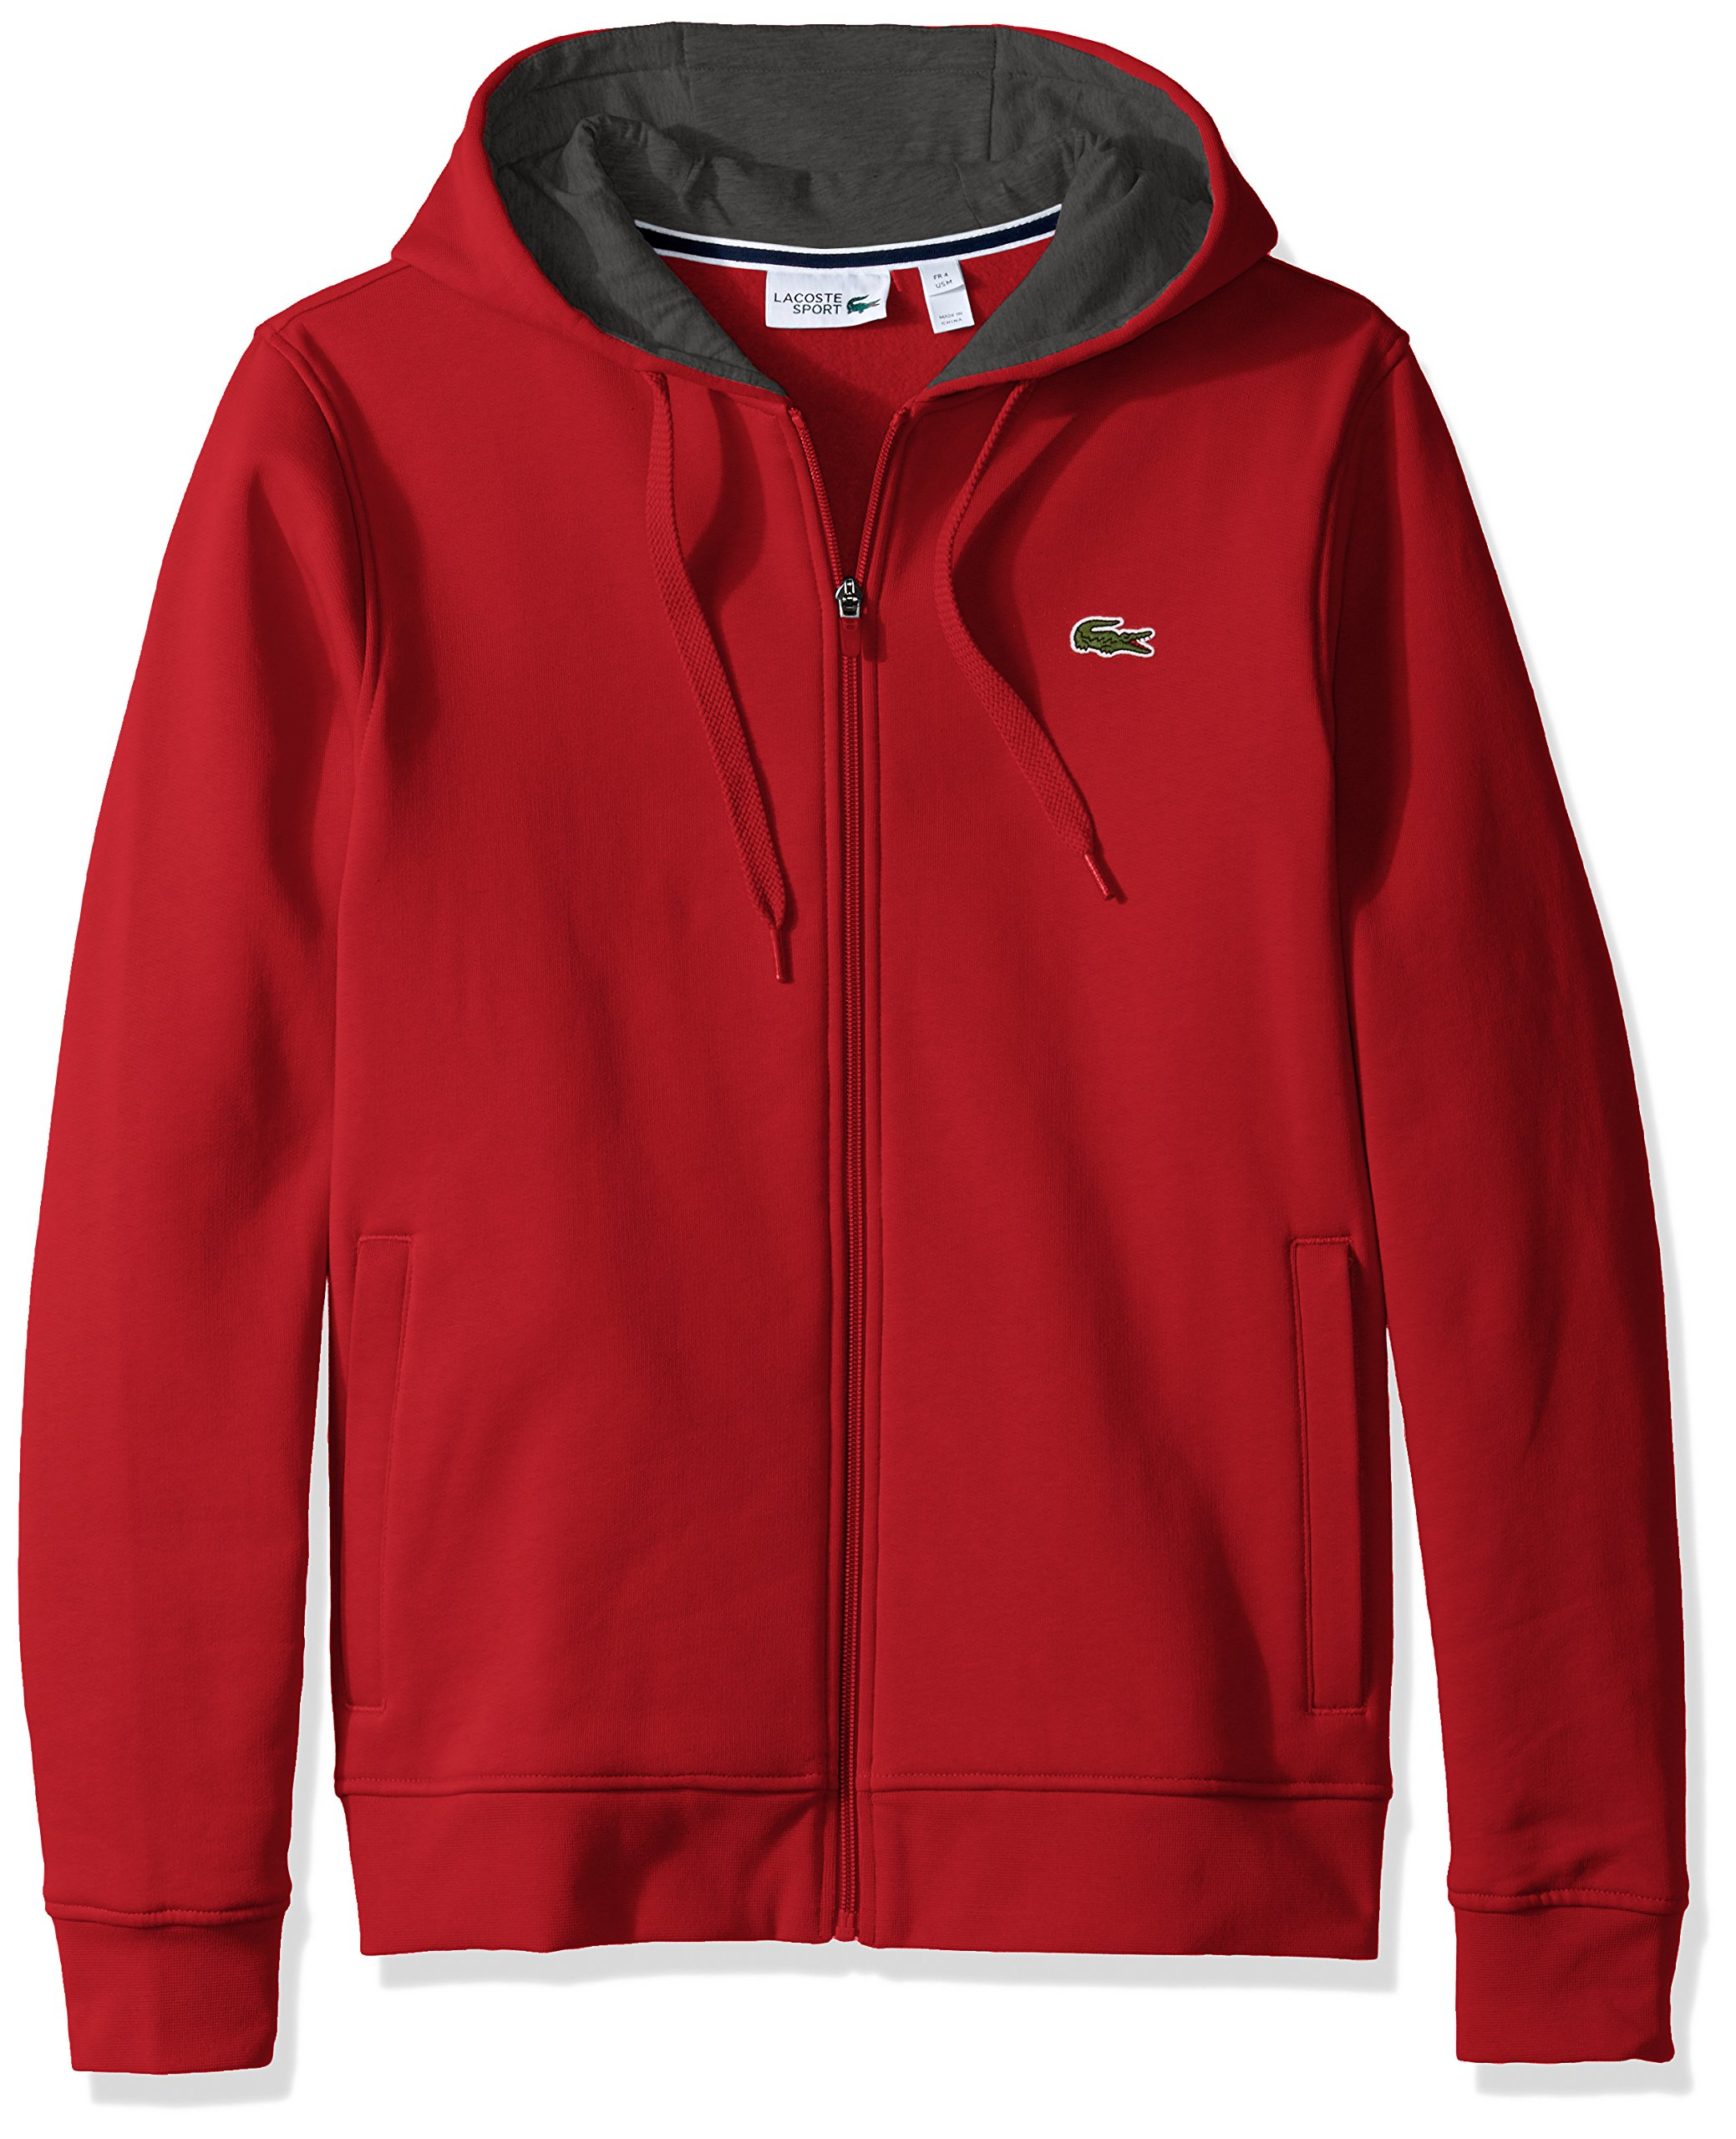 Lacoste Men's Full Zip Hoodie Fleece Sweatshirt, Red/Pitch, Small